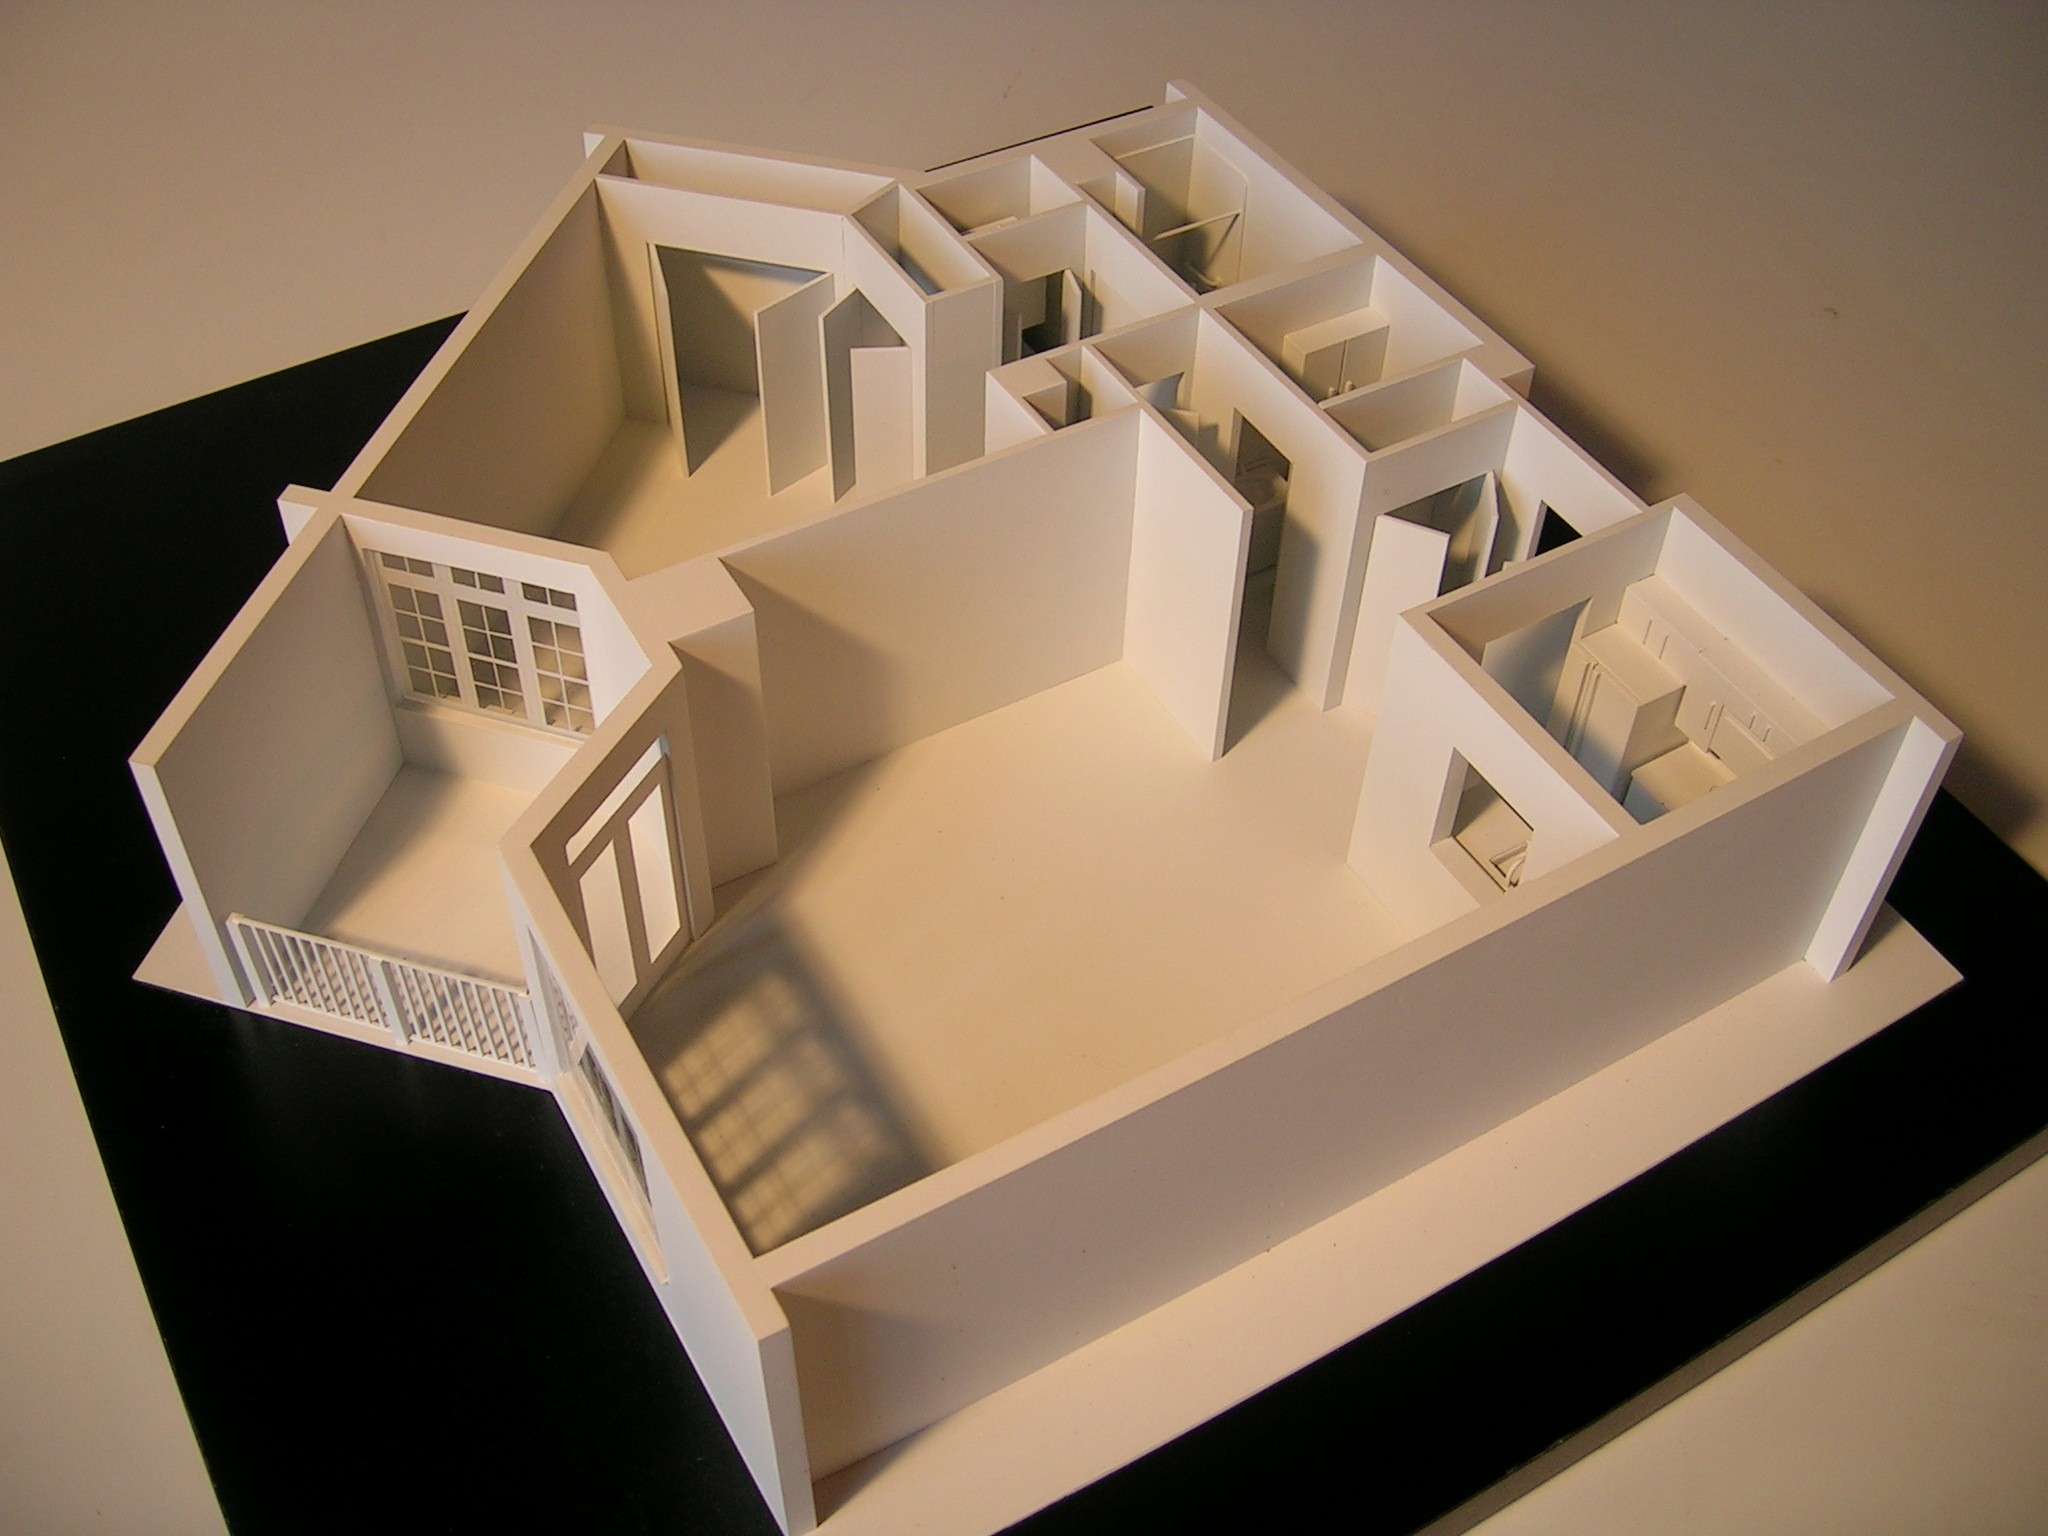 Architectural models communicate kiwimill blog for Architecture simple